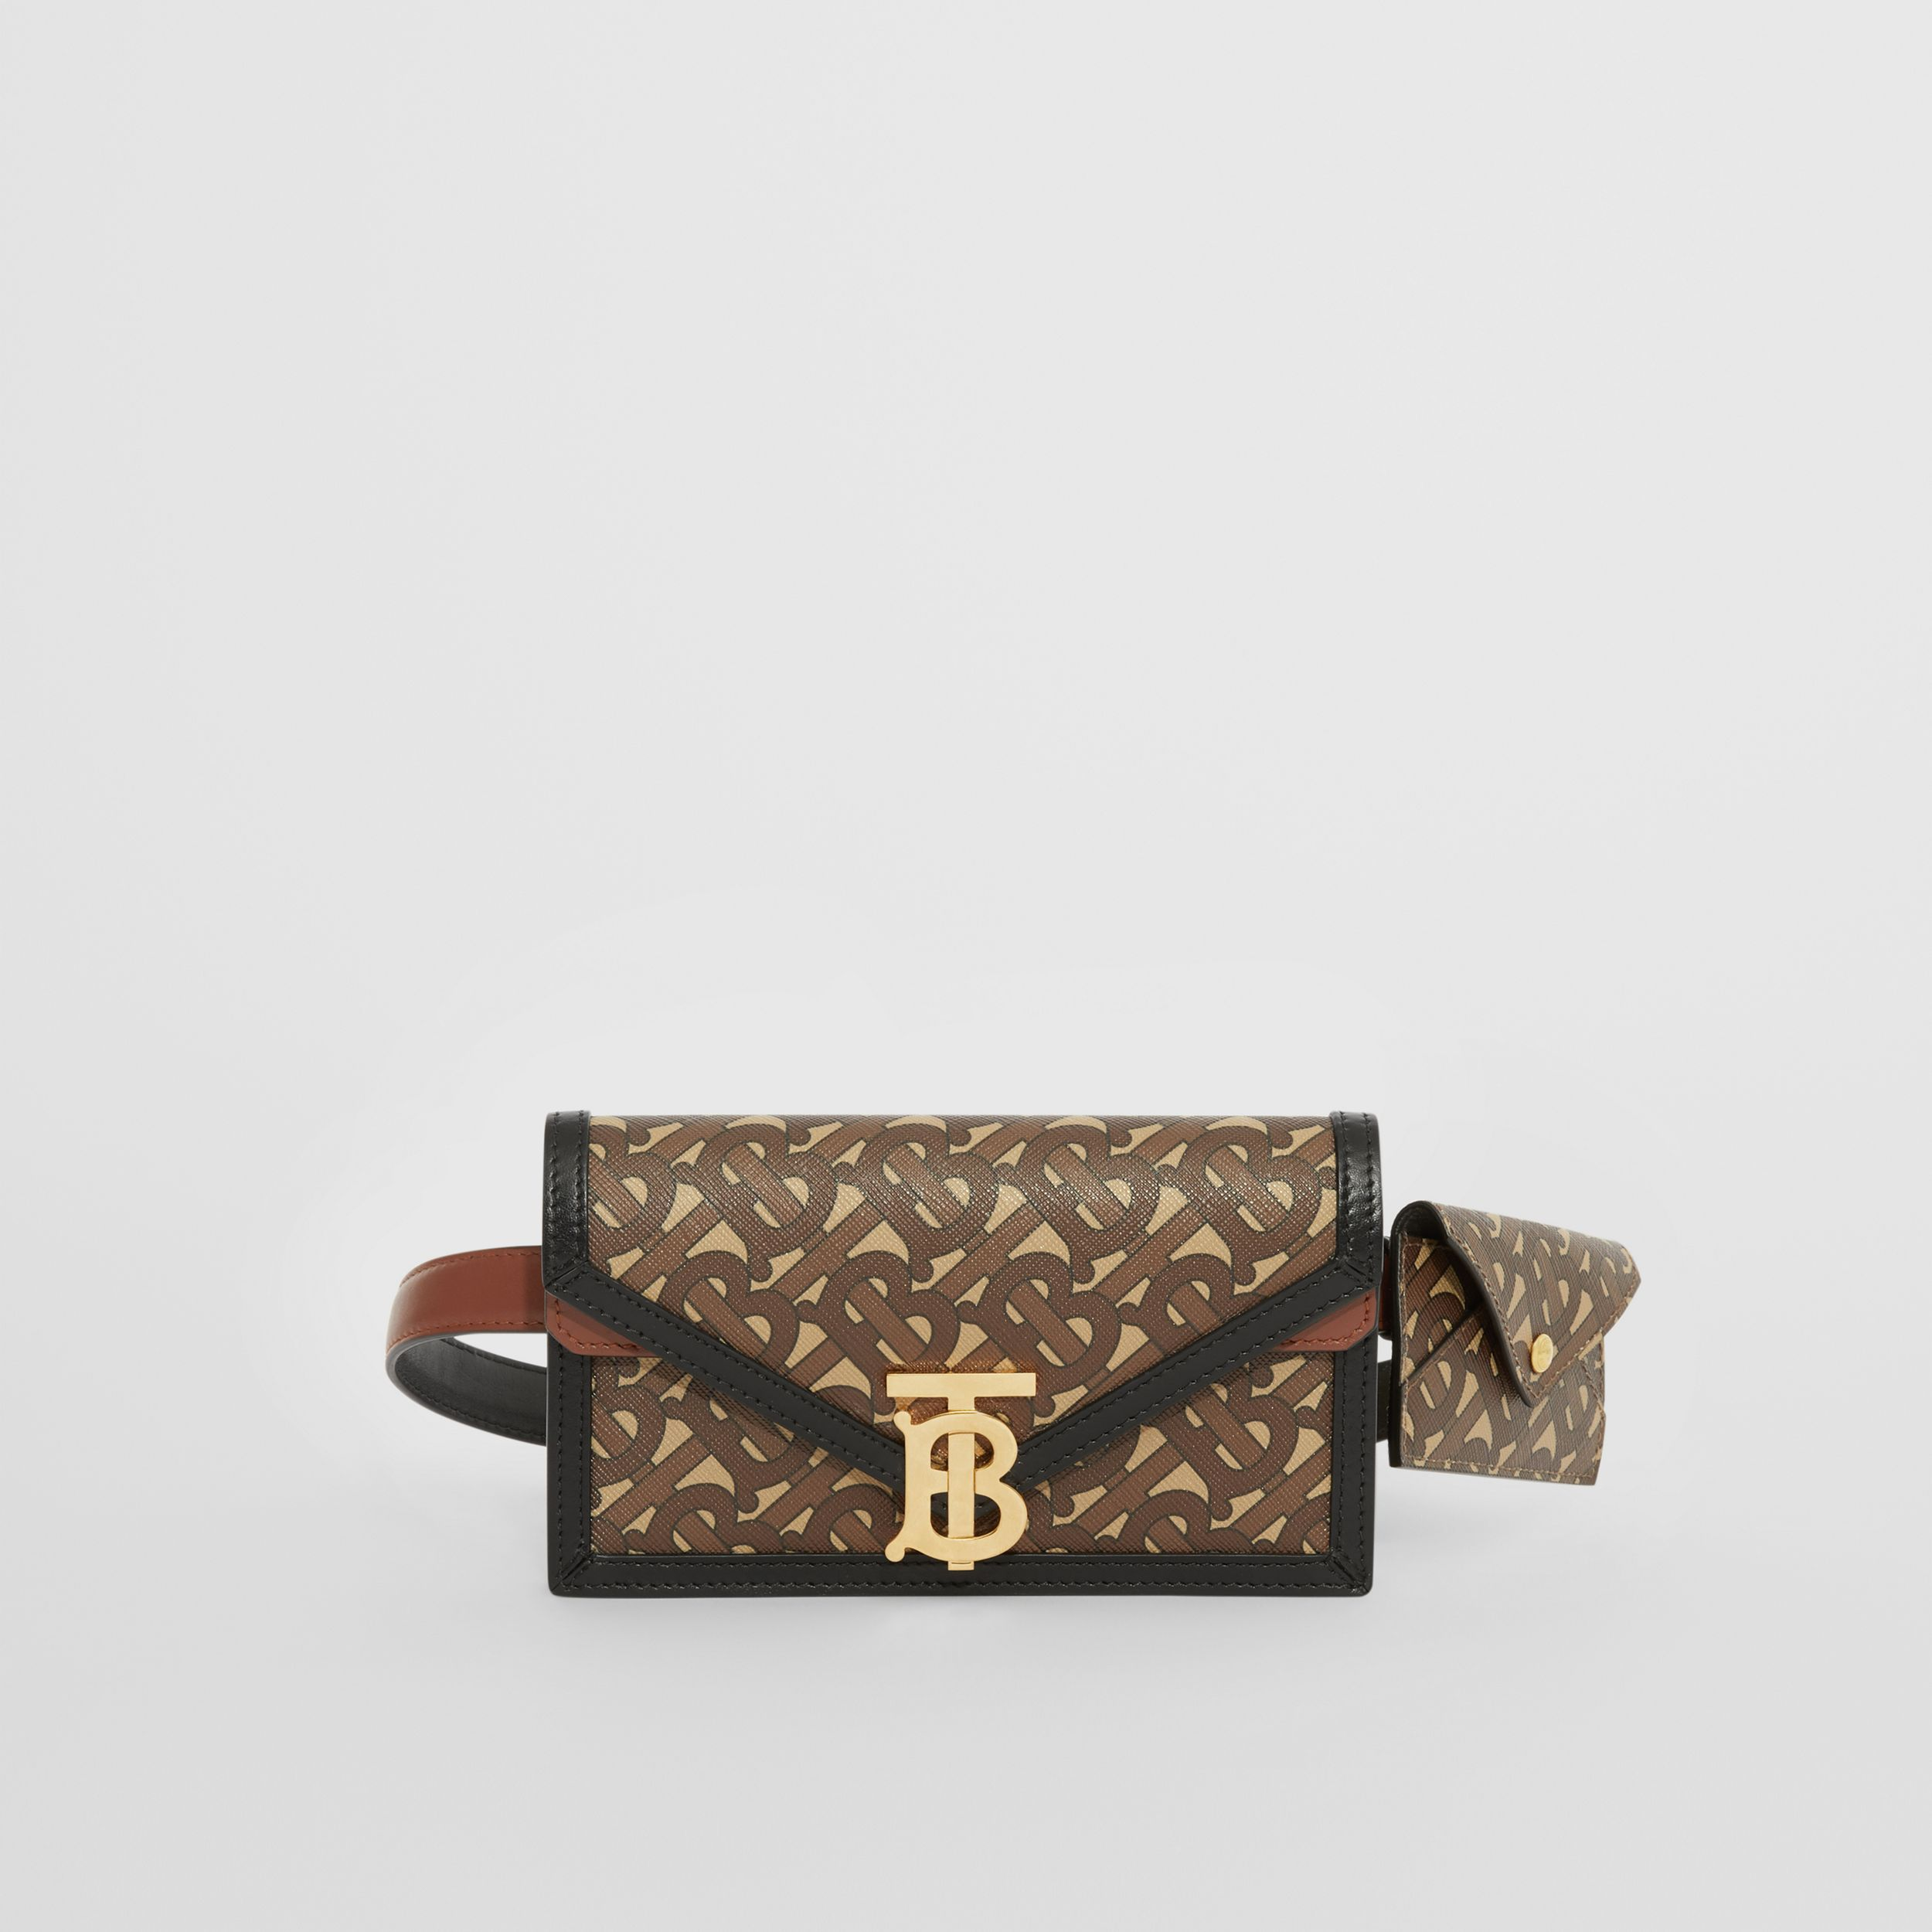 Belted Monogram E-canvas TB Envelope Clutch in Bridle Brown - Women | Burberry - 1